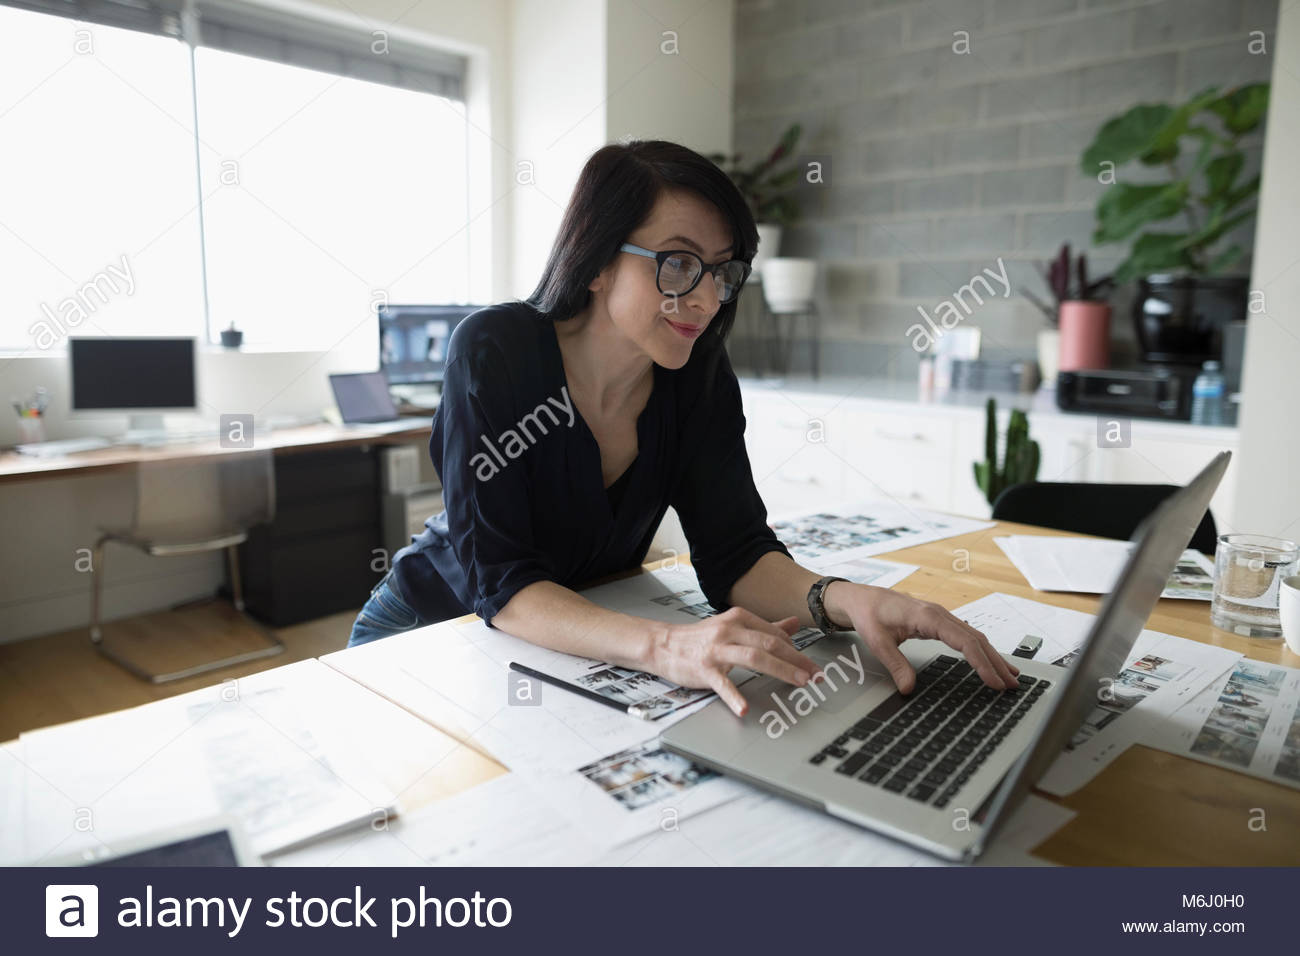 Female photo editor working at laptop, reviewing photo proofs in office Stock Photo